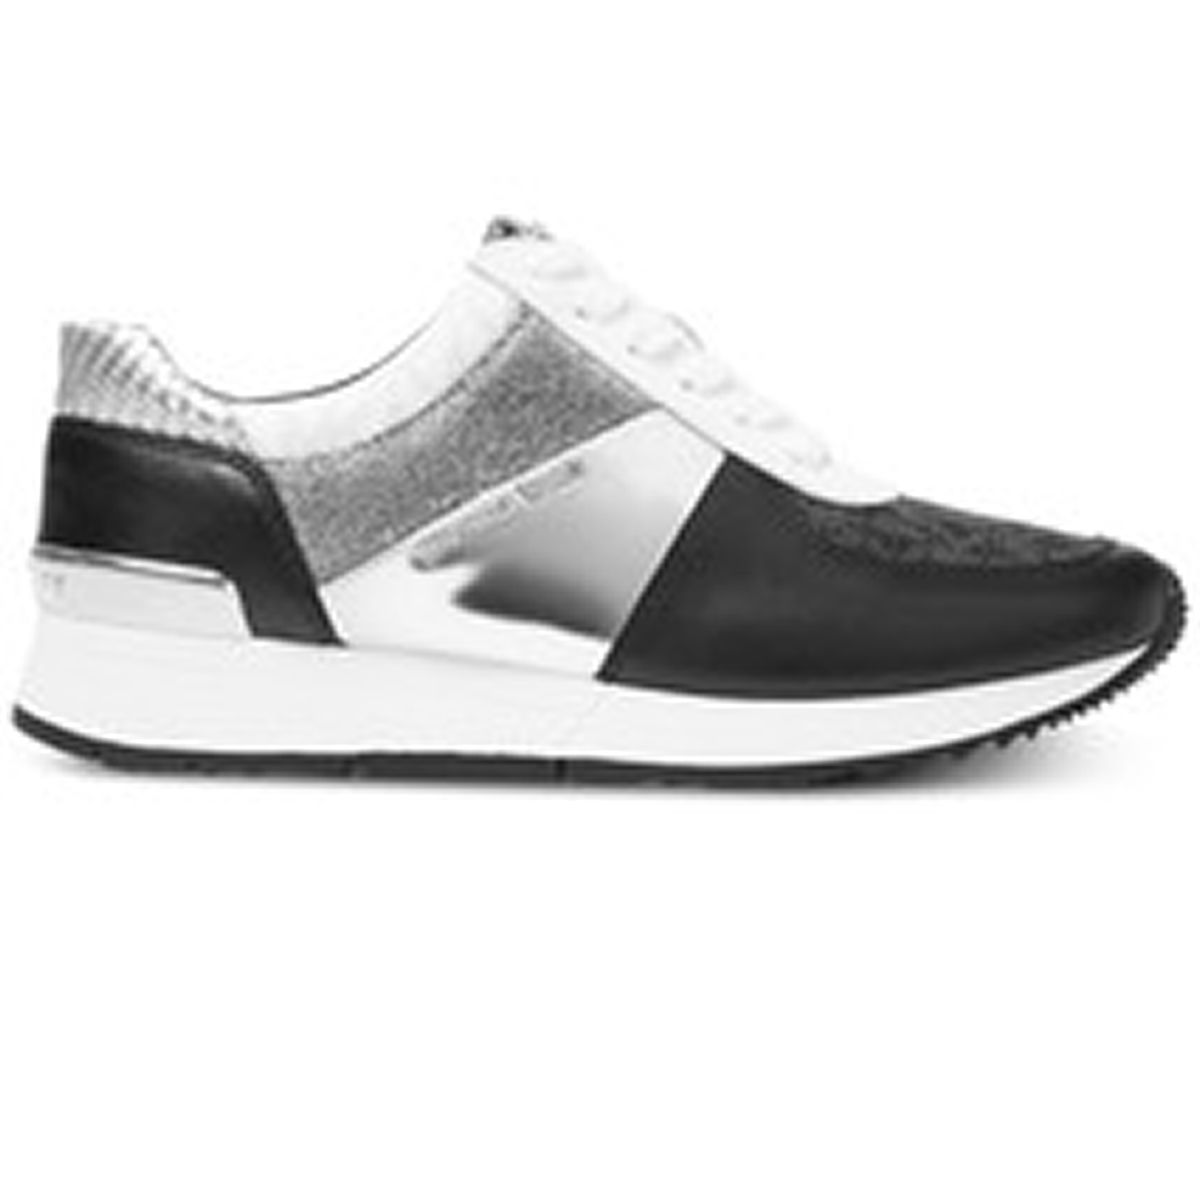 c00883581fb Women s Sneakers and Tennis Shoes - Macy s